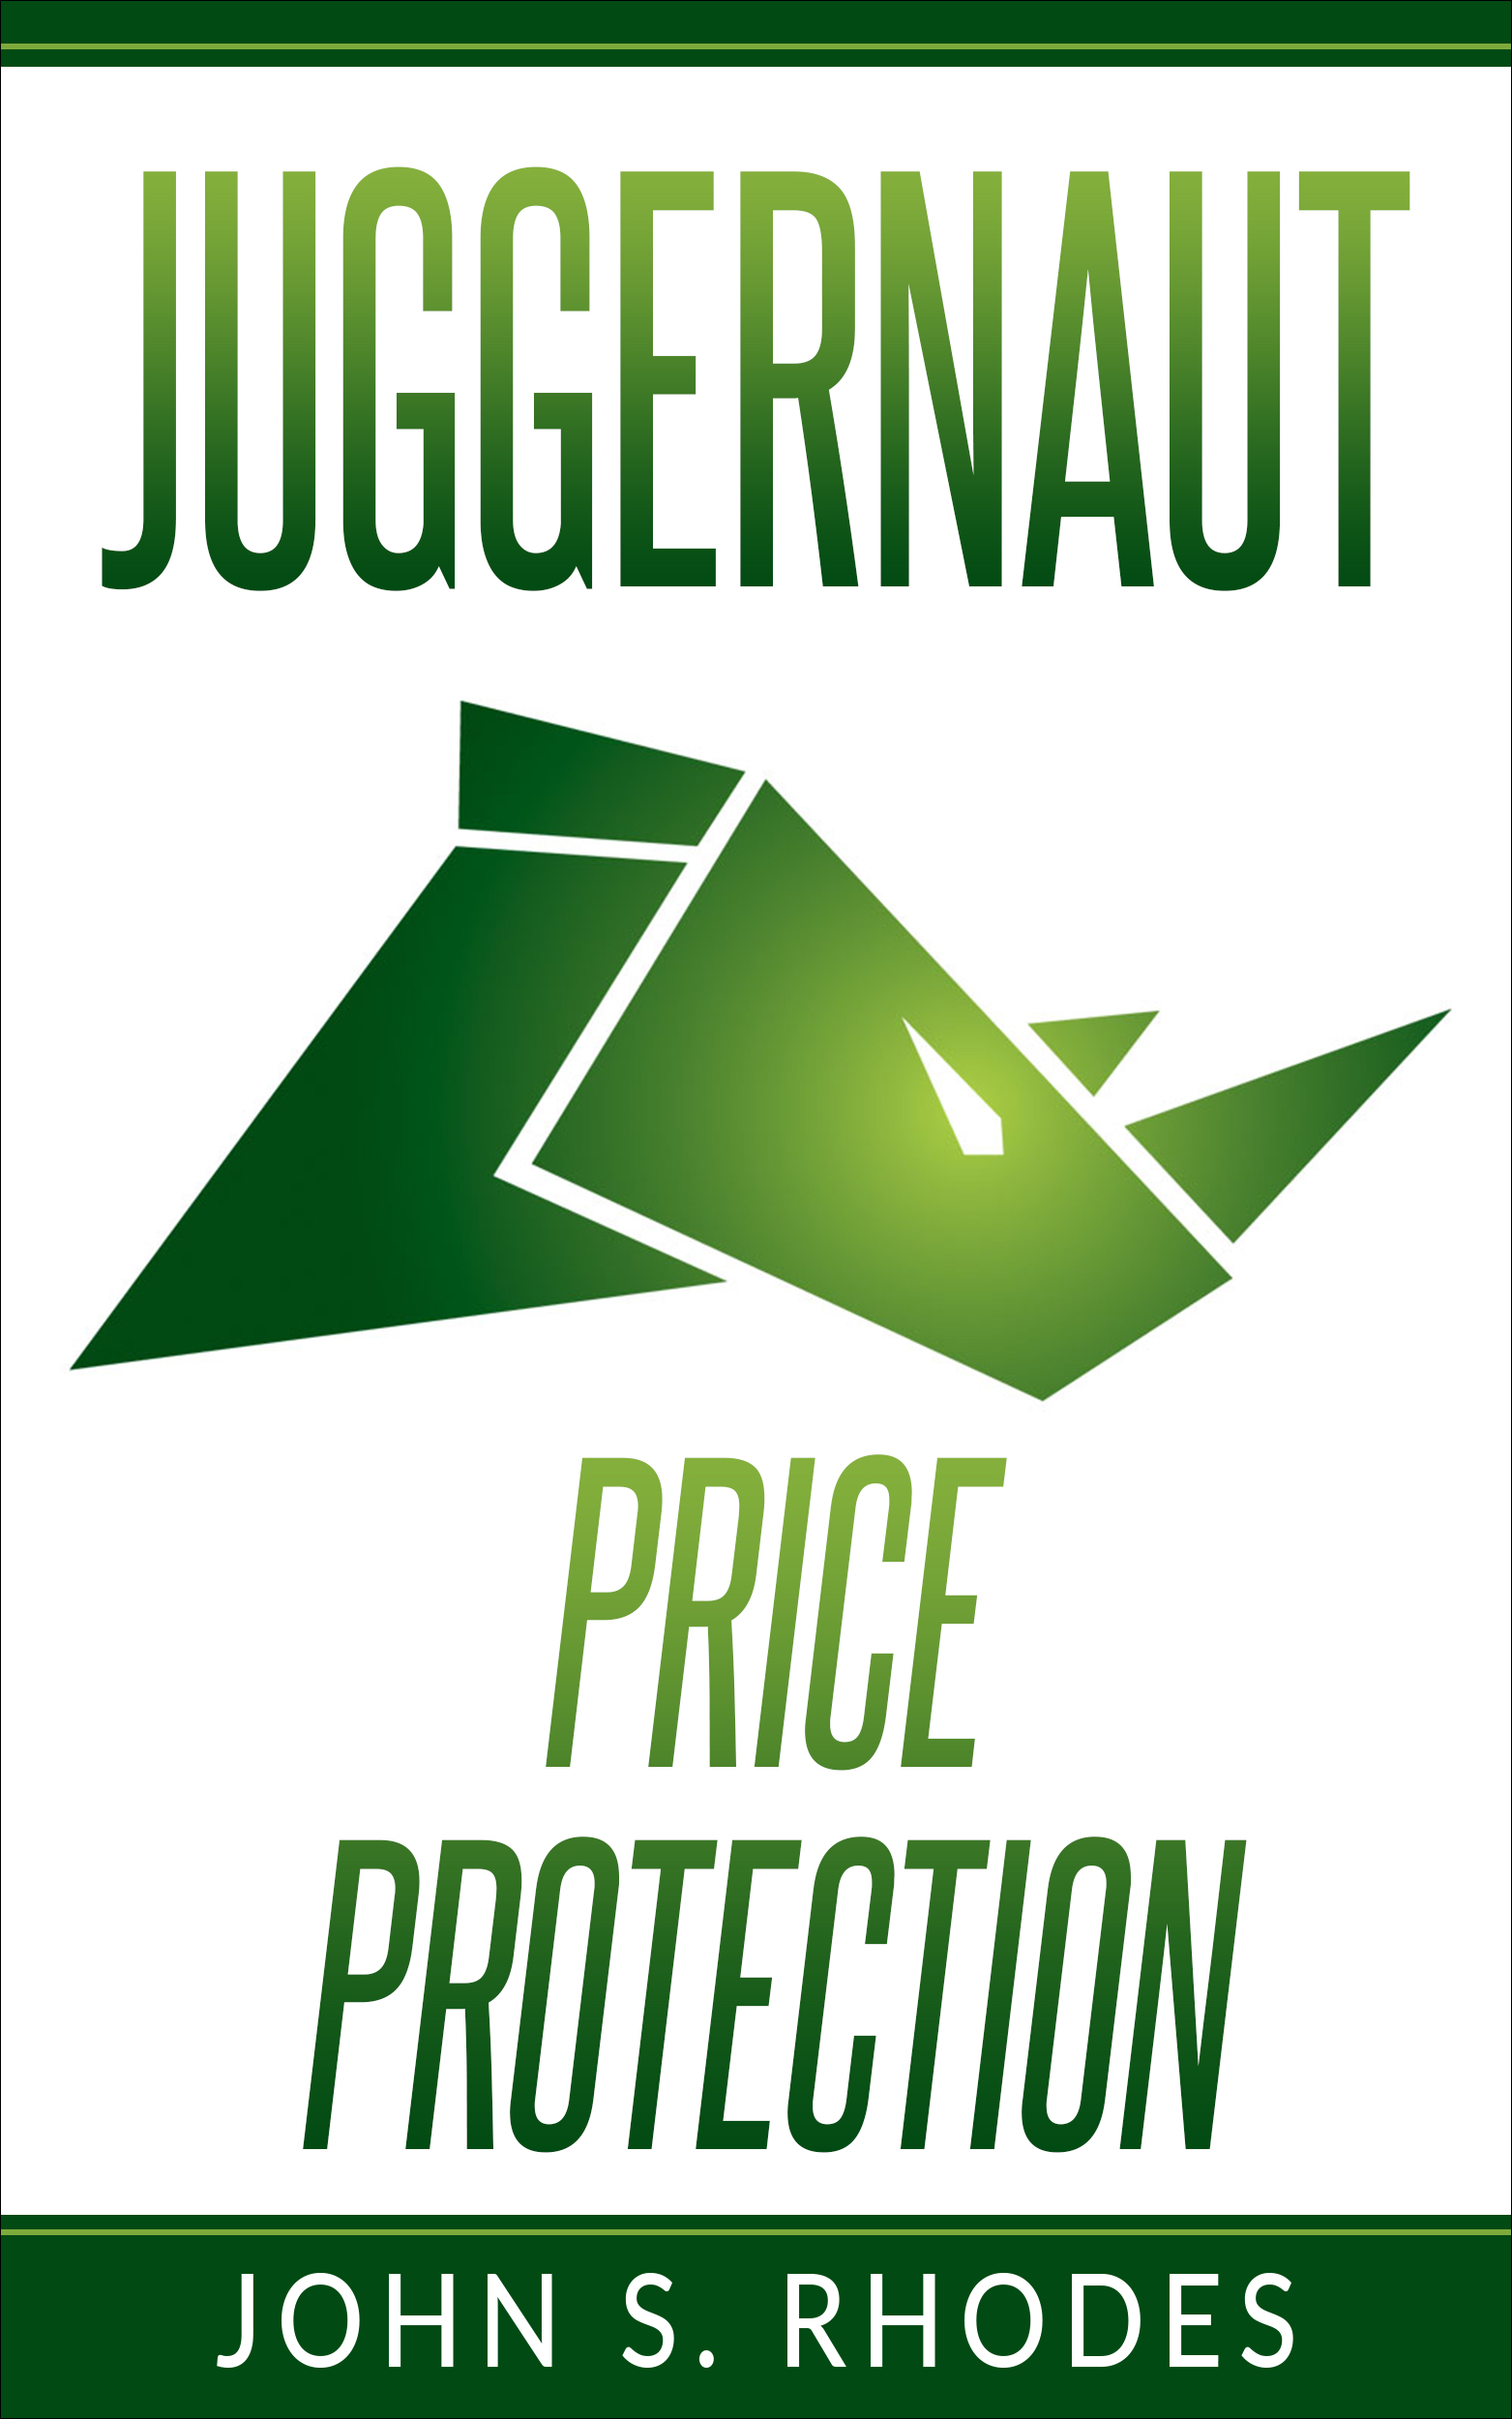 Juggernaut Price Protection by John S Rhodes